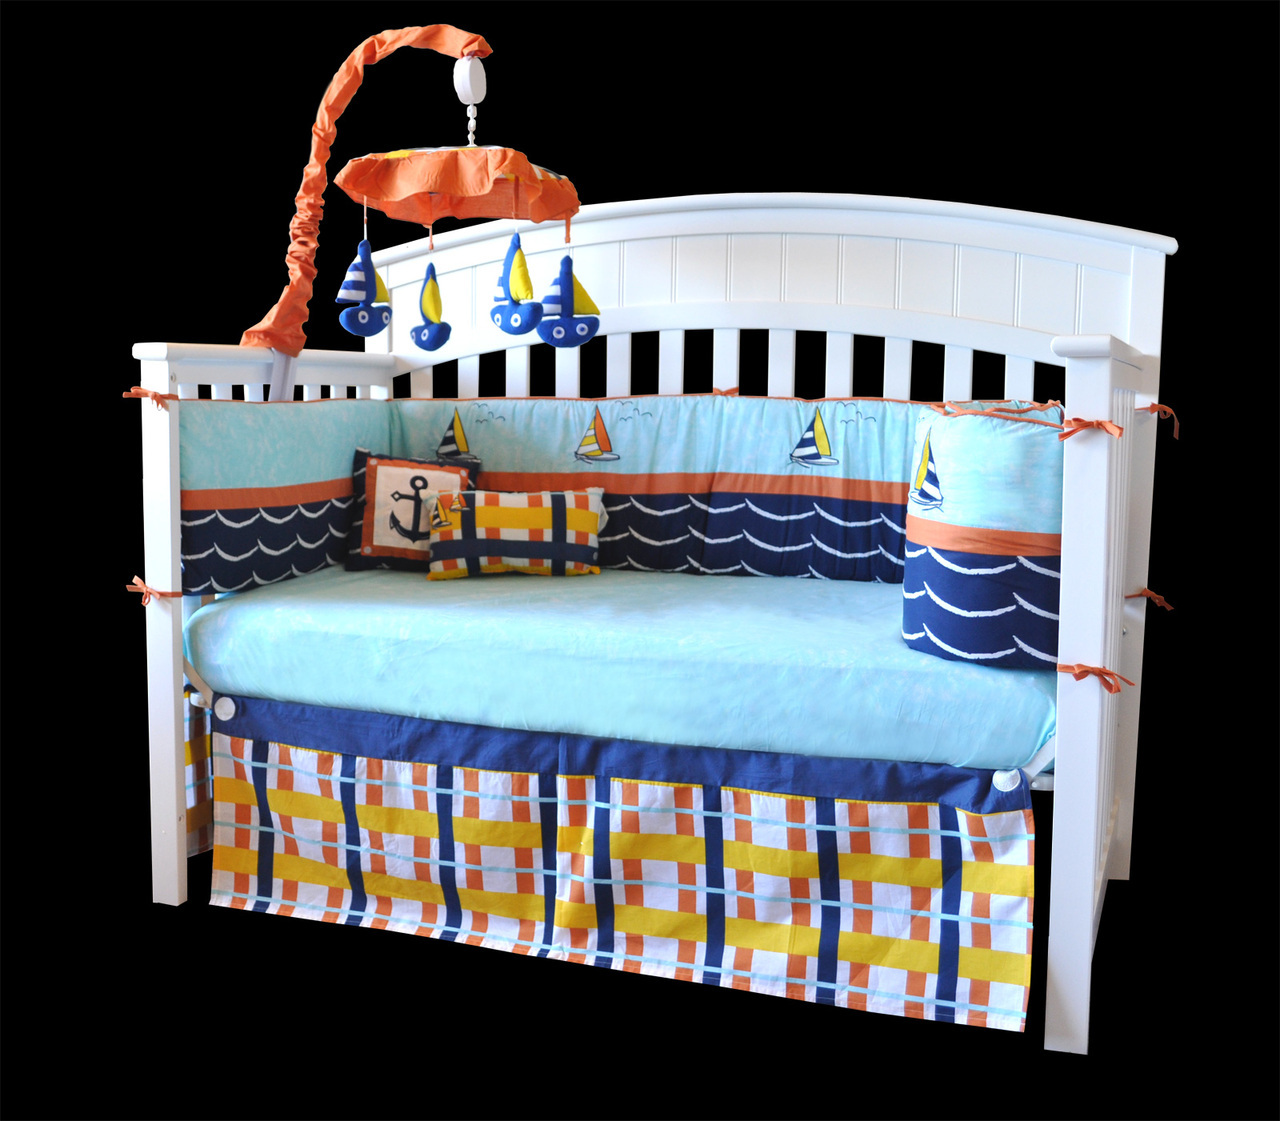 Nautical Infant Bedding: DK Leigh Baby Bedding Review